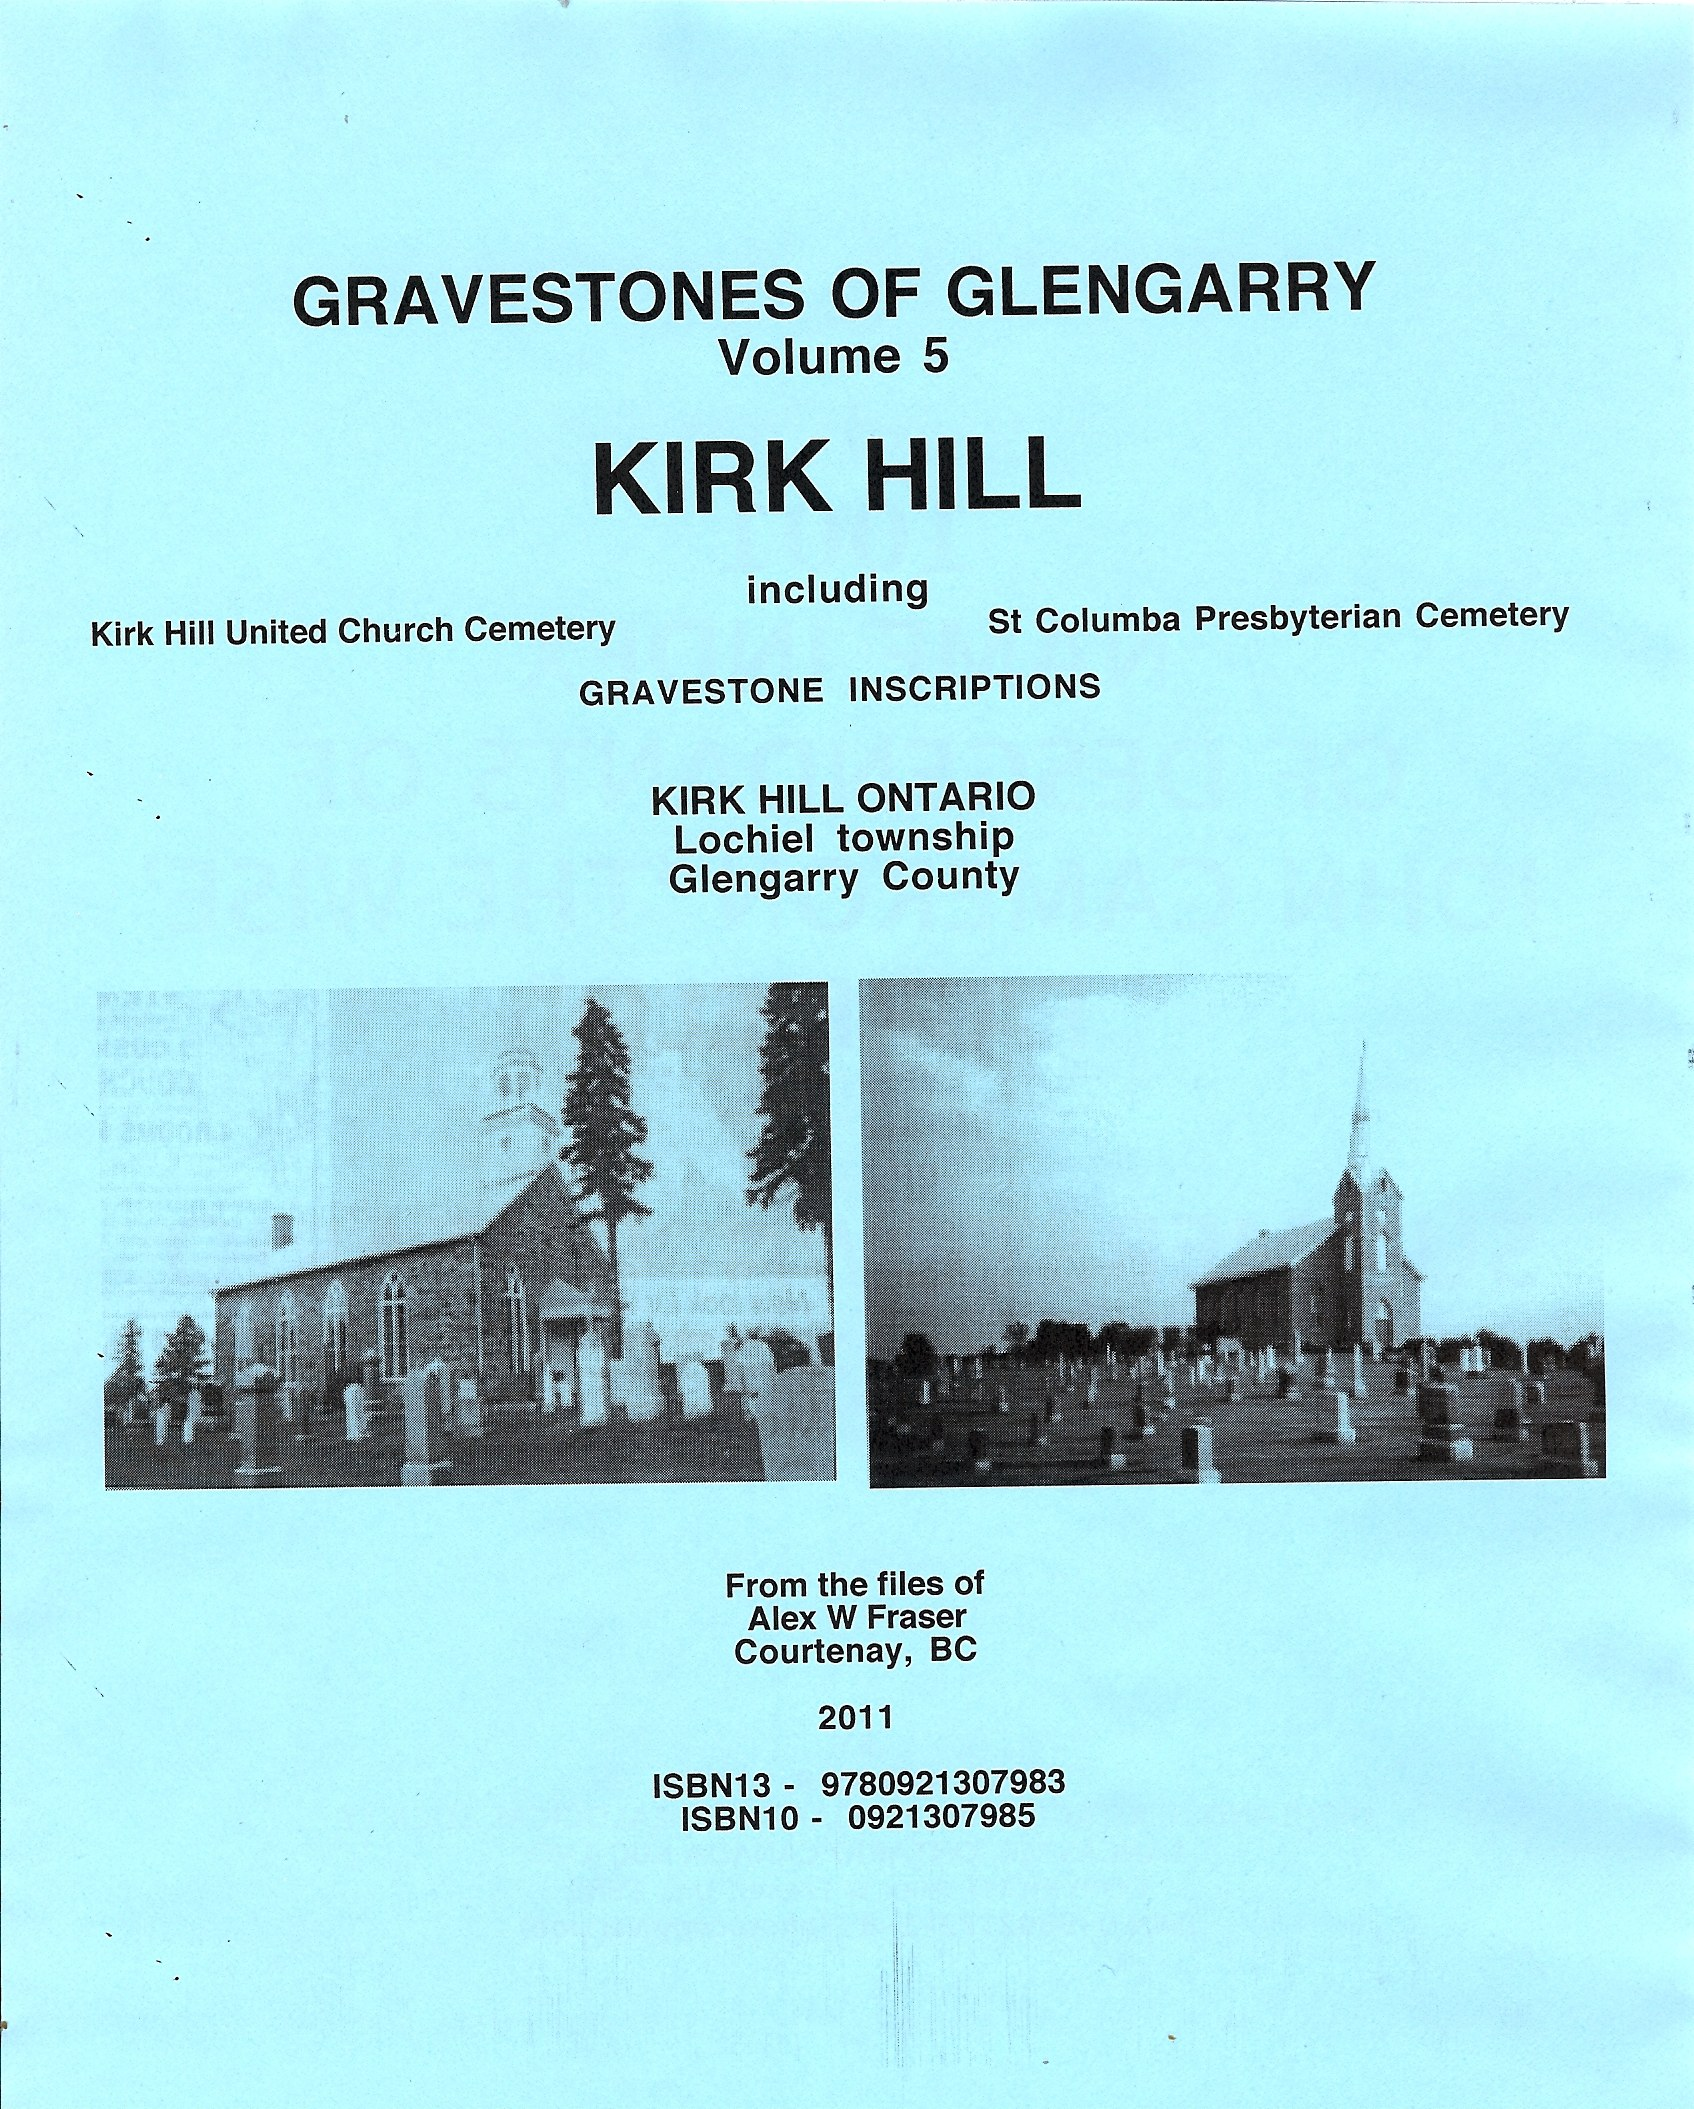 Gravestones of Glengarry v.5